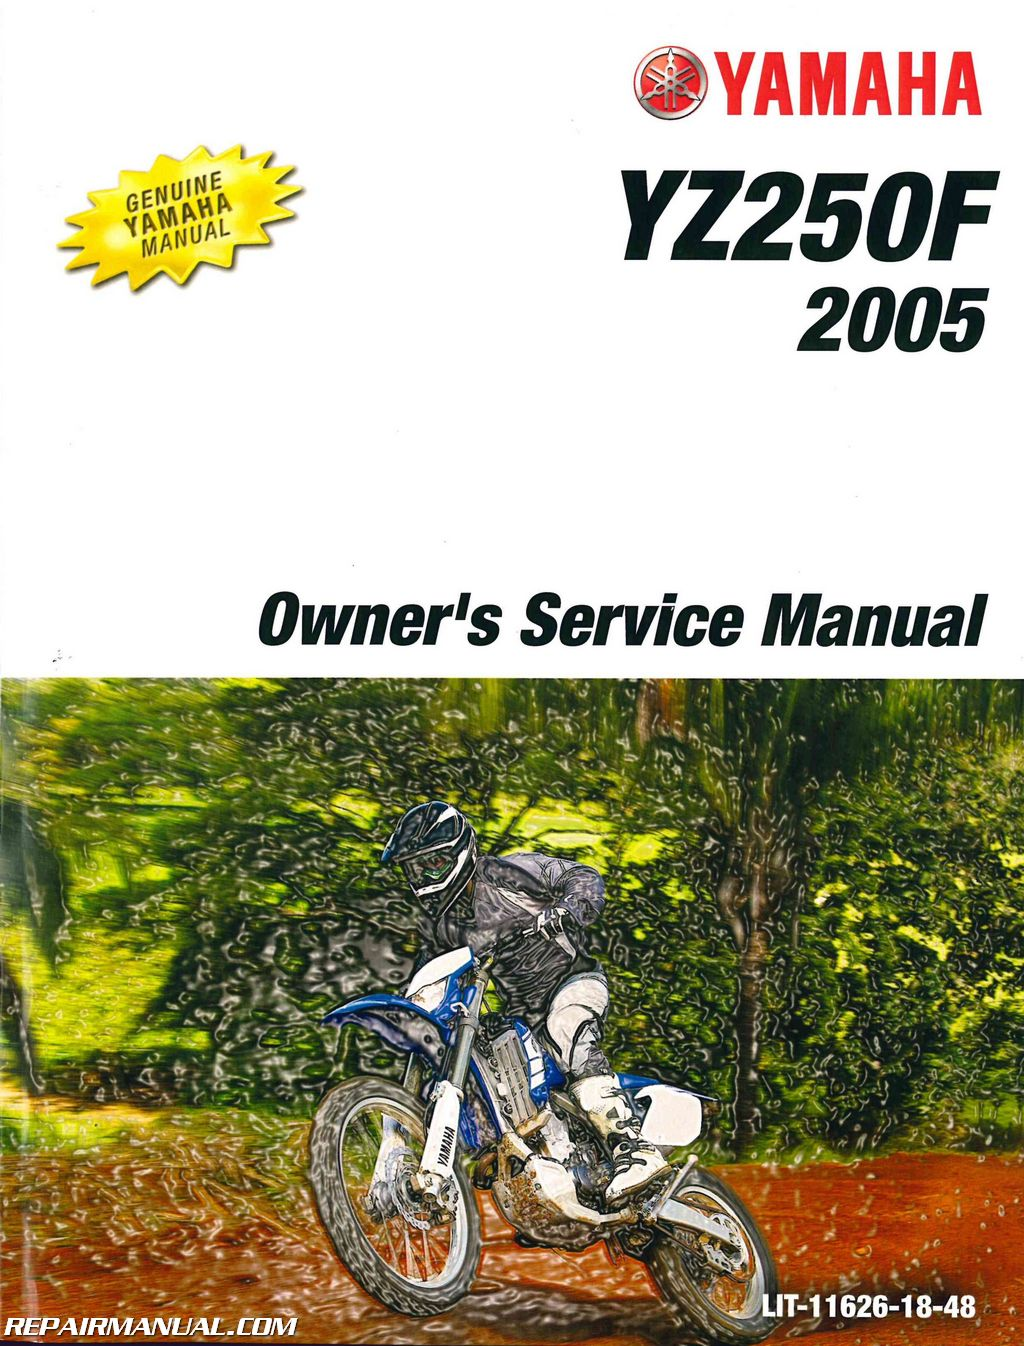 Yamaha dating letter The FS1-EOC ( the Club )